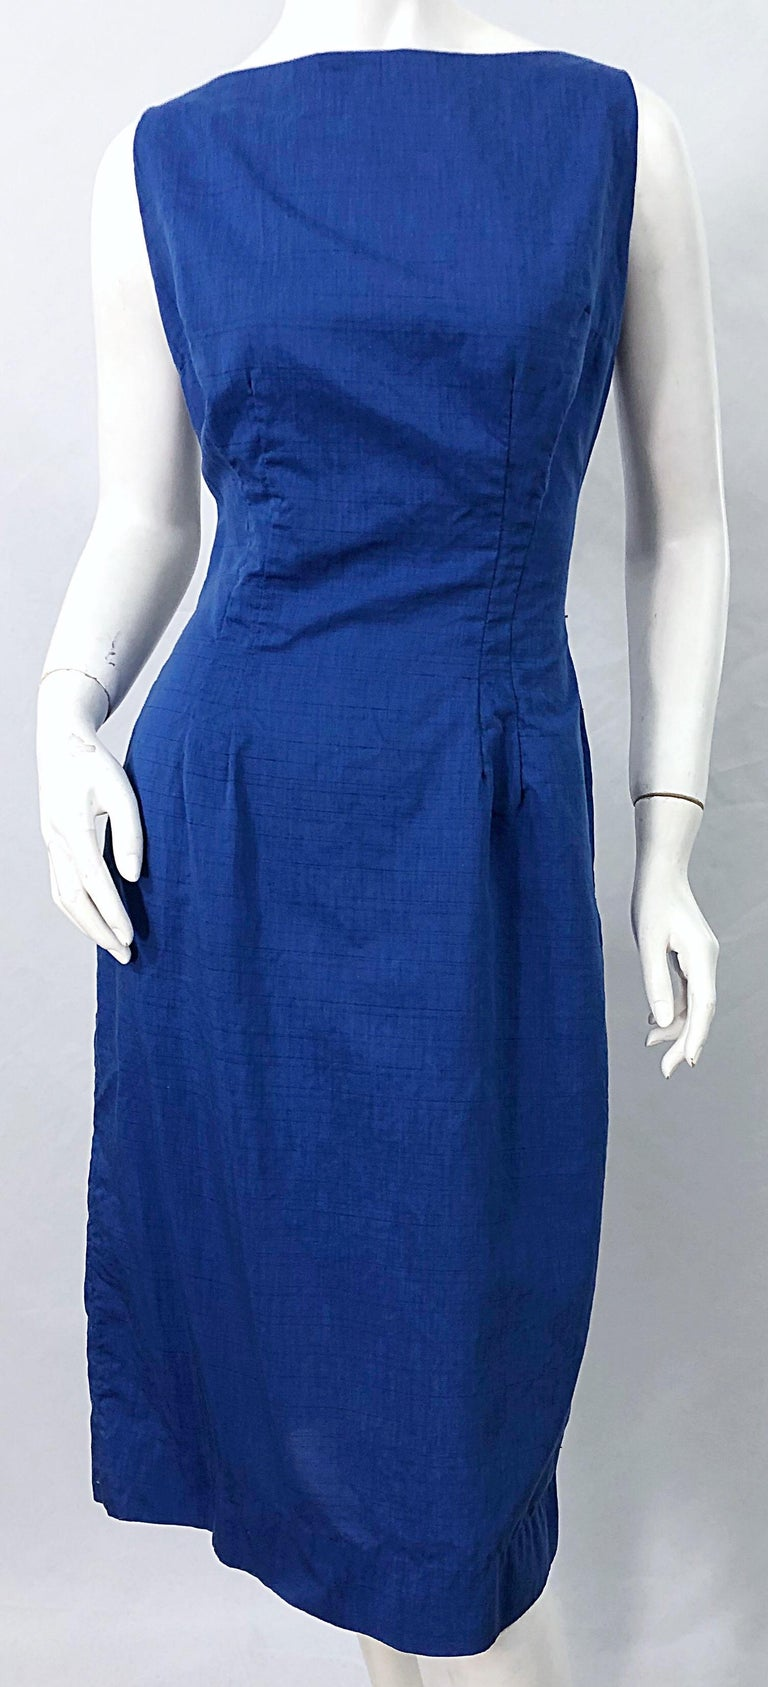 Chic 1950s Cobalt Blue Cotton High Neck Vintage 50s Sleeveless Wiggle Dress For Sale 3